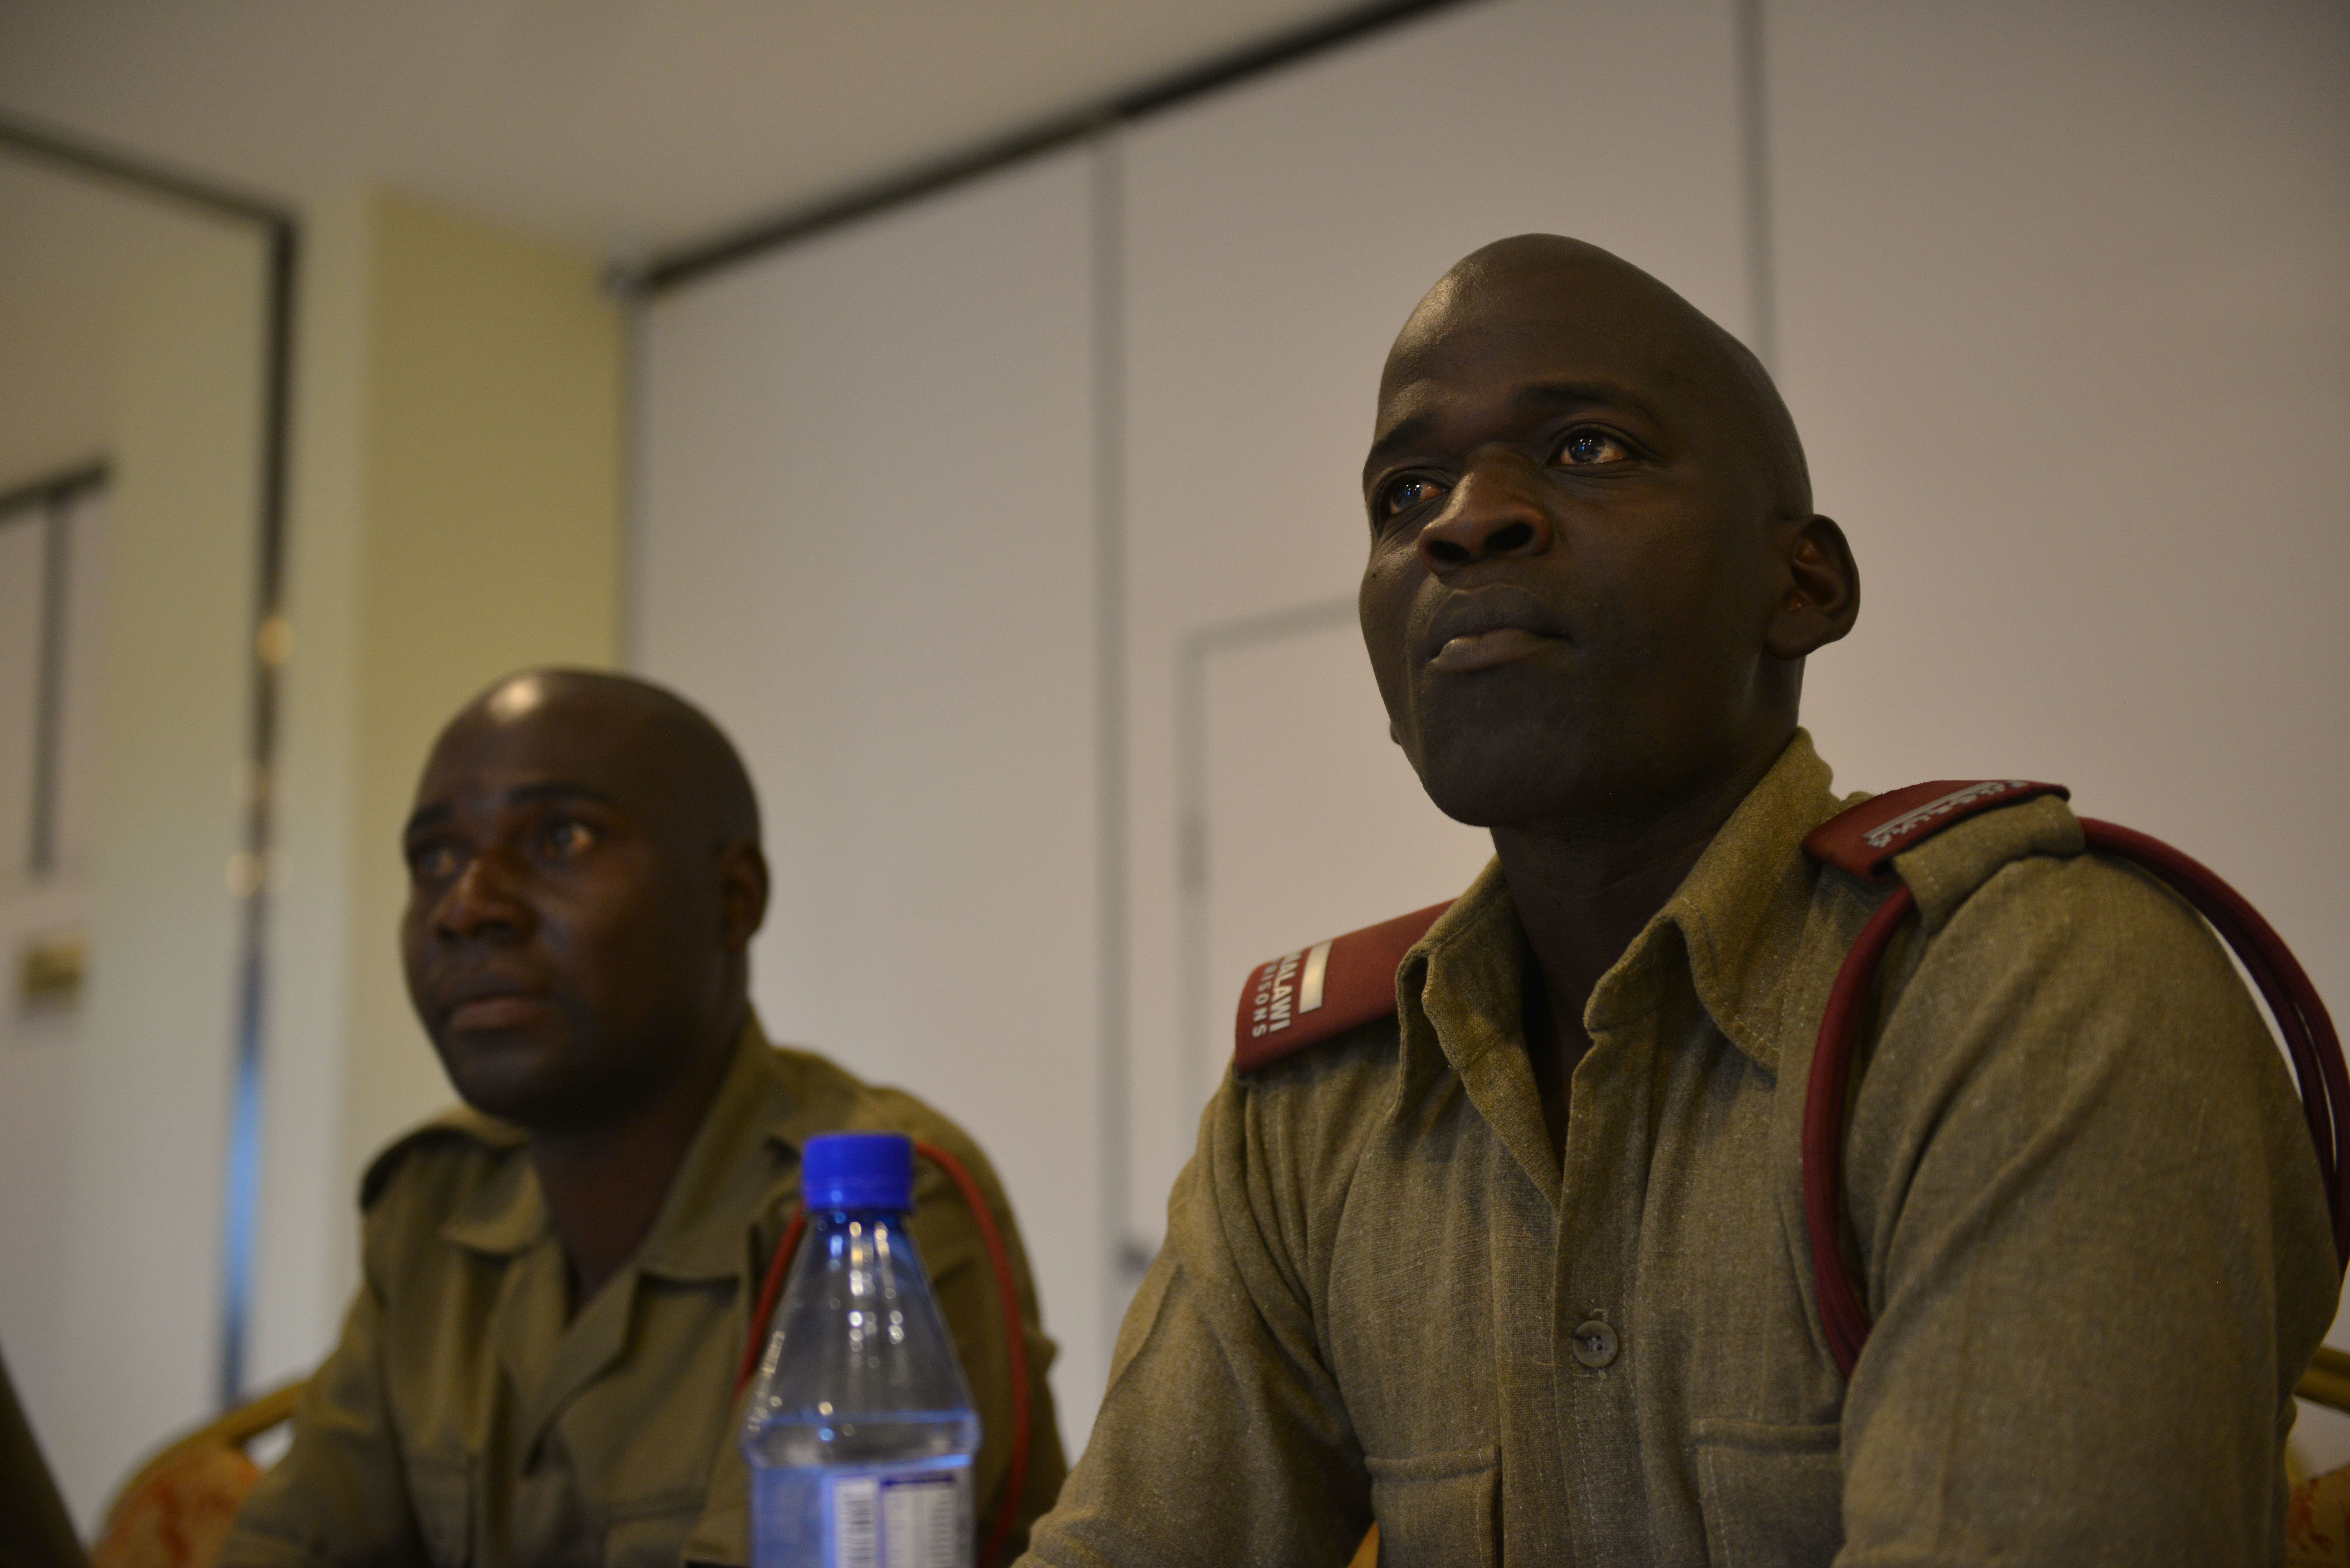 (Aug. 18, 2017) – Steve Meke, Malawi Prison Service Subinspector, attends a briefing during a three-day public affairs exchange between public affairs professionals from Malawi's security sector and members of U.S. Africa Command's public affairs team as part of Africa Endeavor 2017 at the Umodzi Convention Center in Lilongwe, Malawi. Africa Endeavor is an annual senior leader and communications symposium and technology expo designed to develop standardized, multinational communications practices for peacekeeping and disaster response missions mandated by the African Union and the United Nations.(RELEASED)